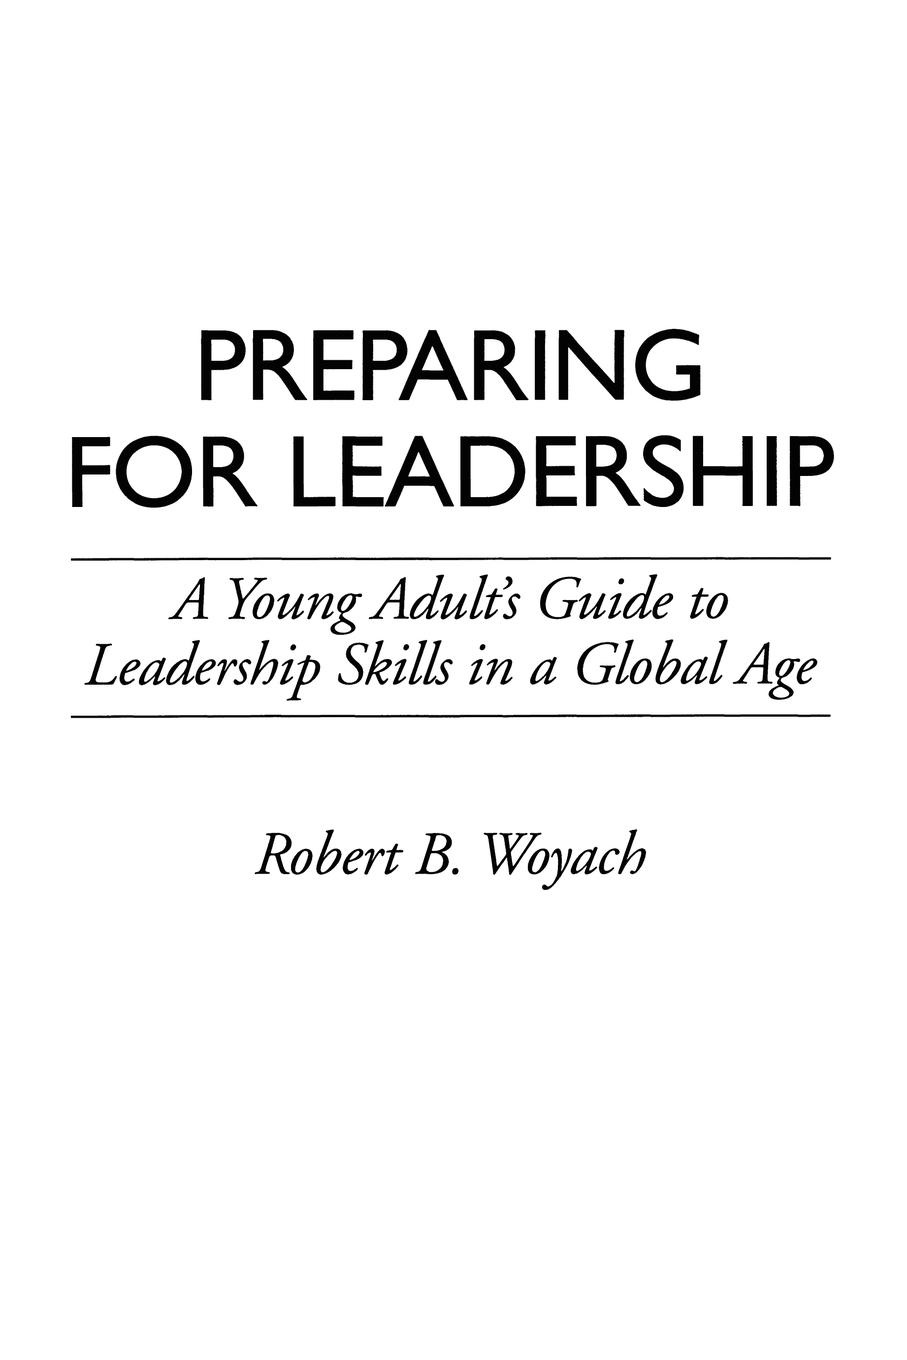 Robert B. Woyach Preparing for Leadership. A Young Adult's Guide to Leadership Skills in a Global Age paige haber curran emotionally intelligent leadership a guide for students